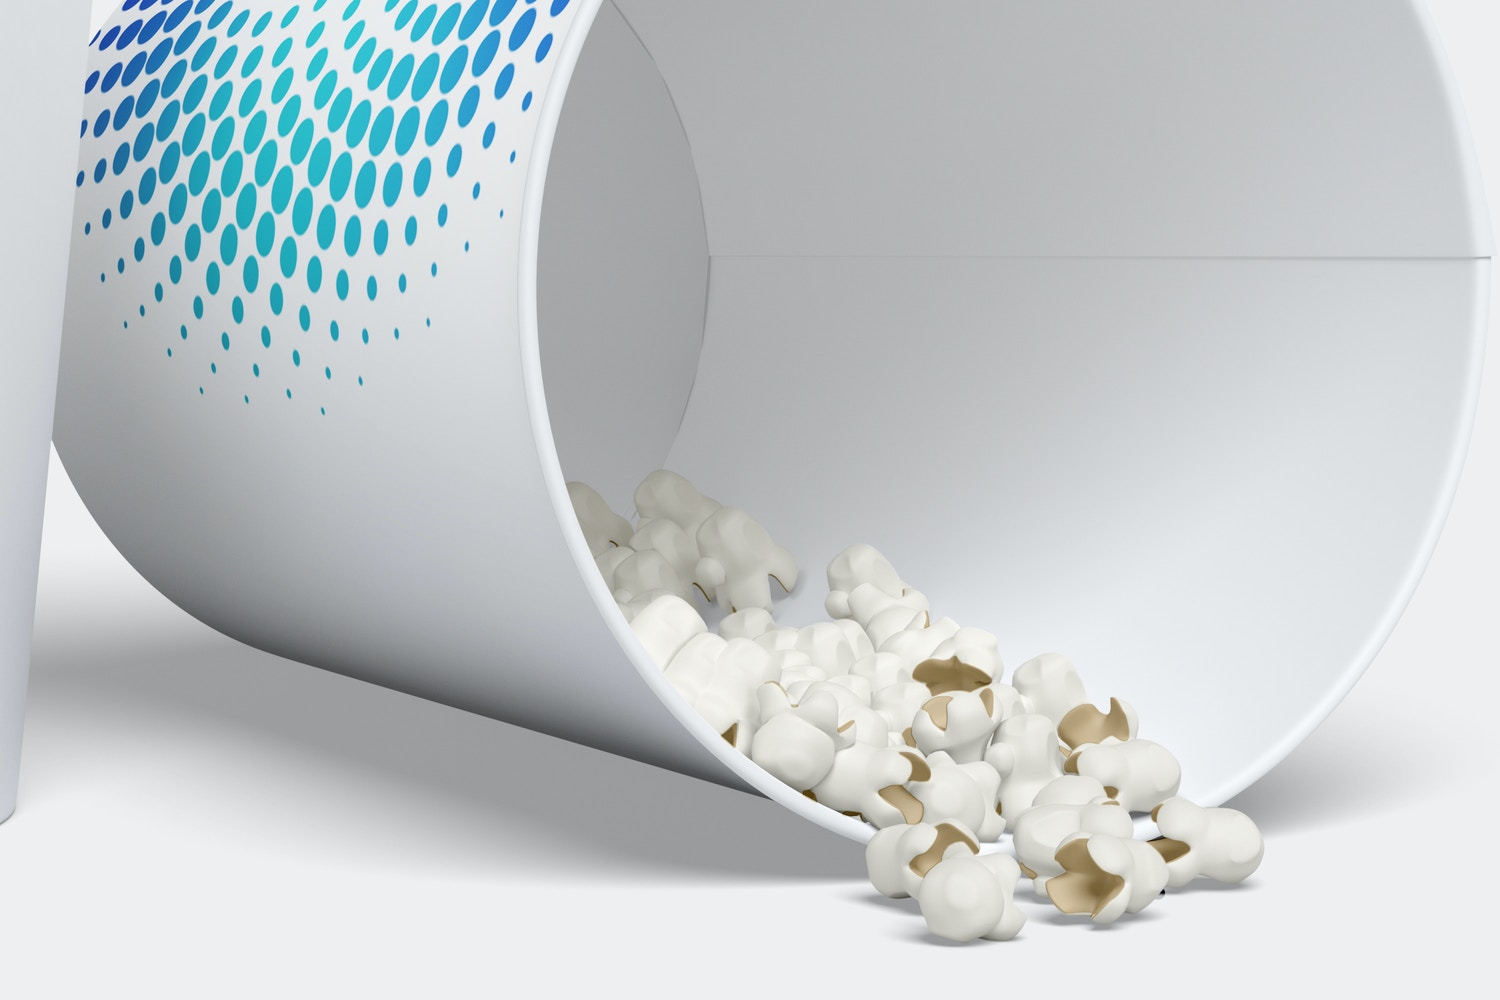 Oops! You're running out of popcorn.